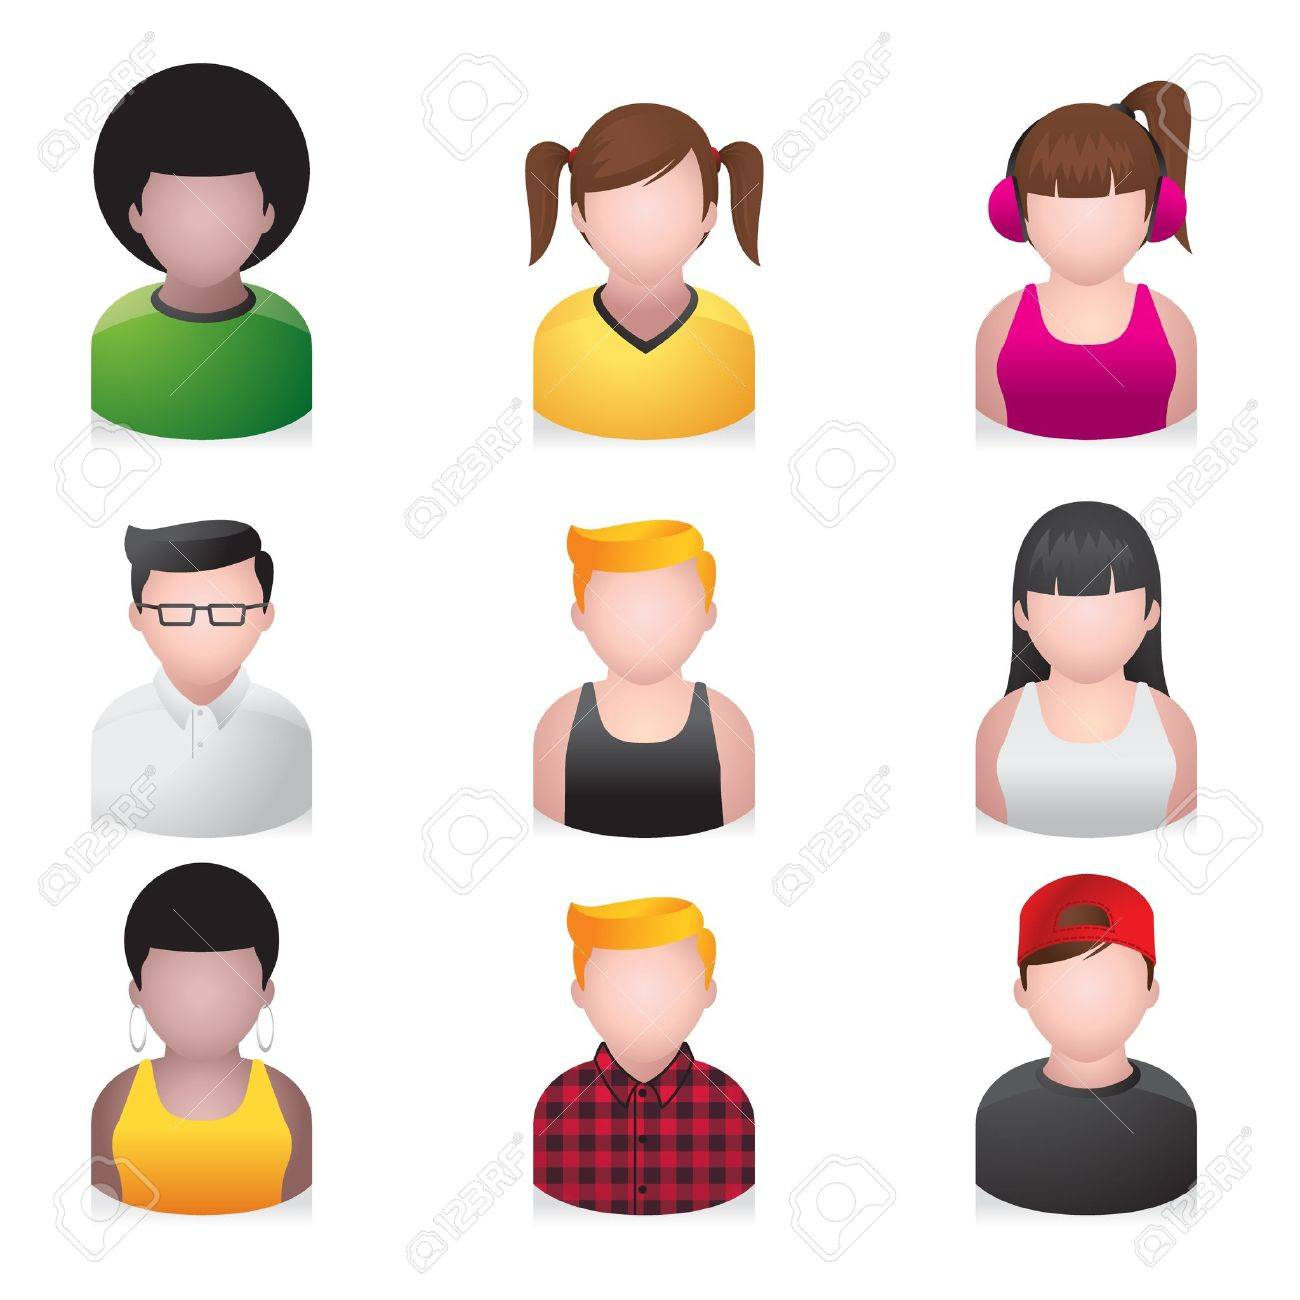 People Icons - Youngster Stock Vector - 10414691